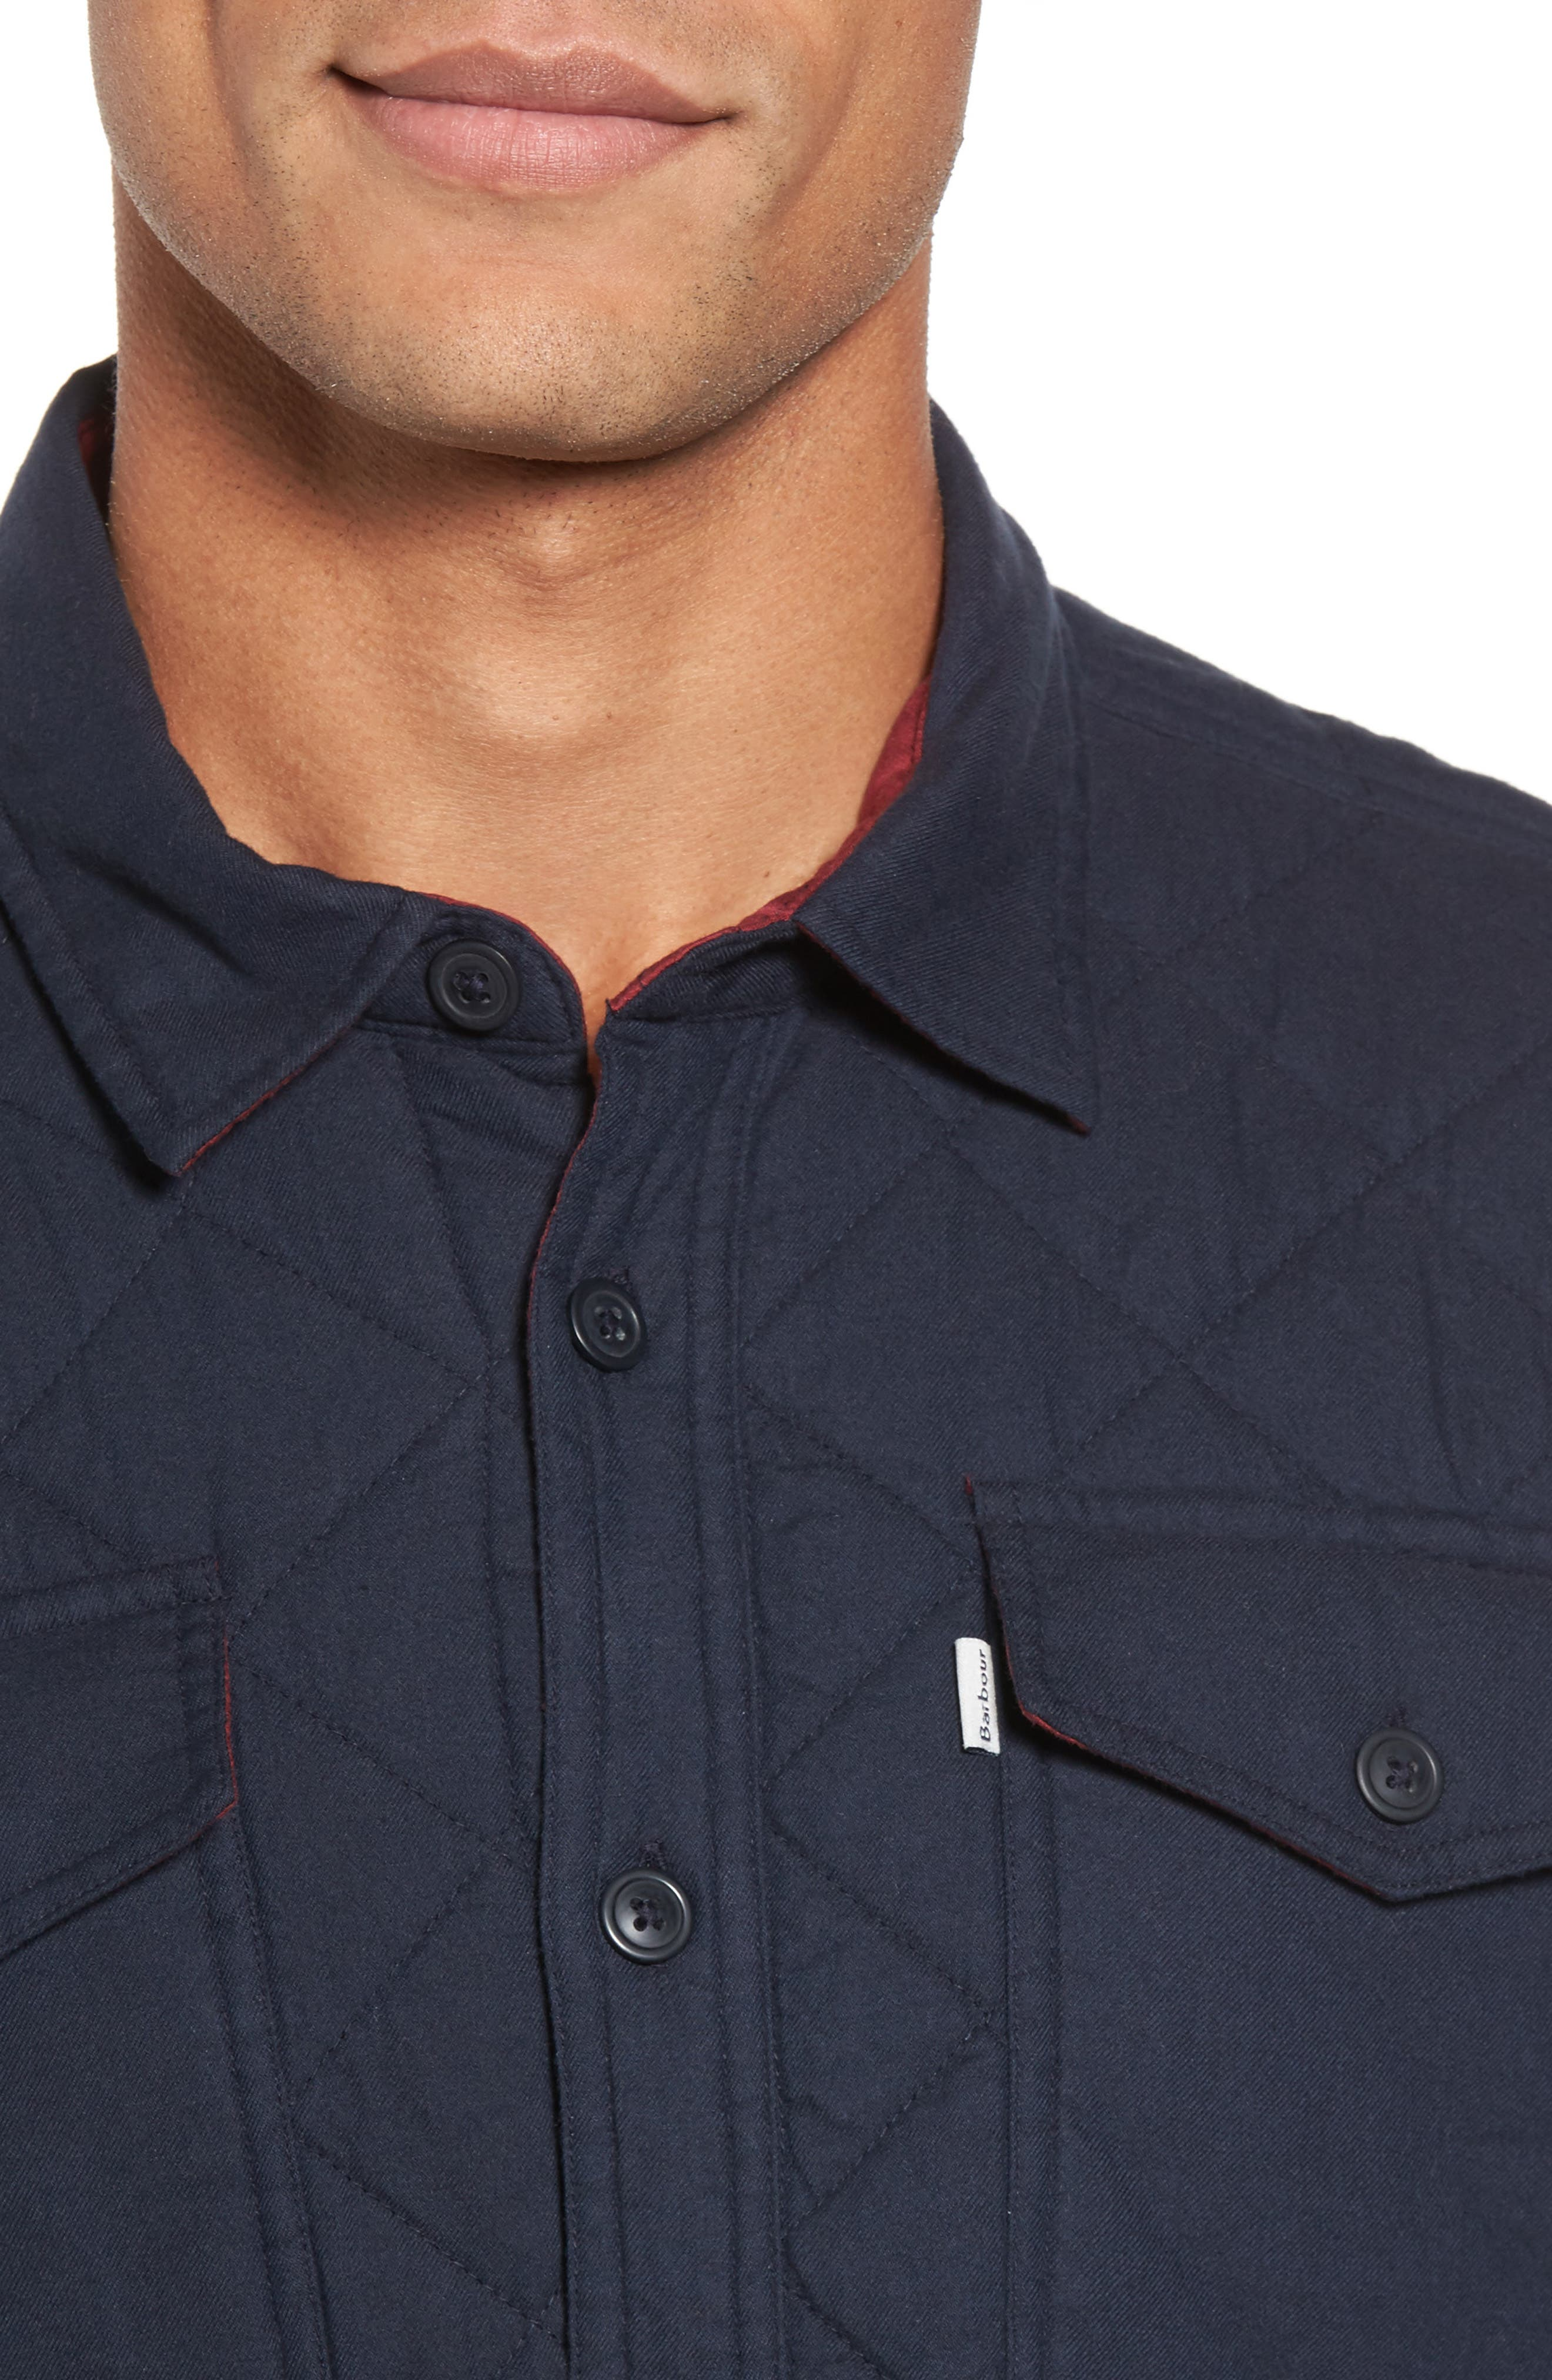 Quilted Shirt Jacket,                             Alternate thumbnail 4, color,                             410